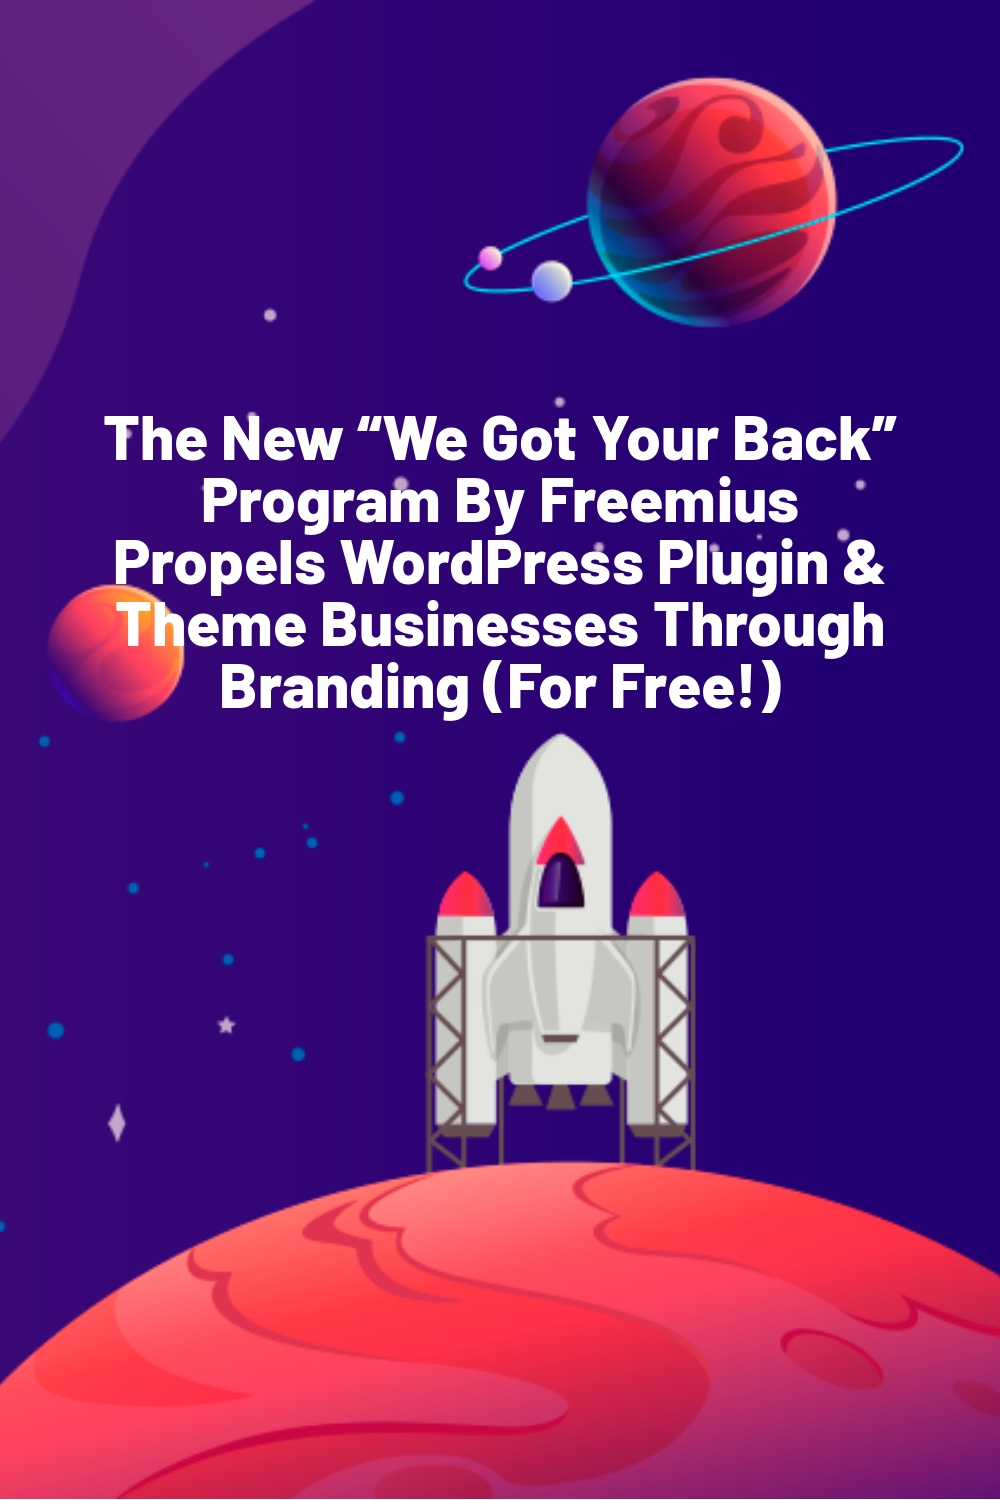 """The New """"We Got Your Back"""" Program By Freemius Propels WordPress Plugin & Theme Businesses Through Branding (For Free!)"""